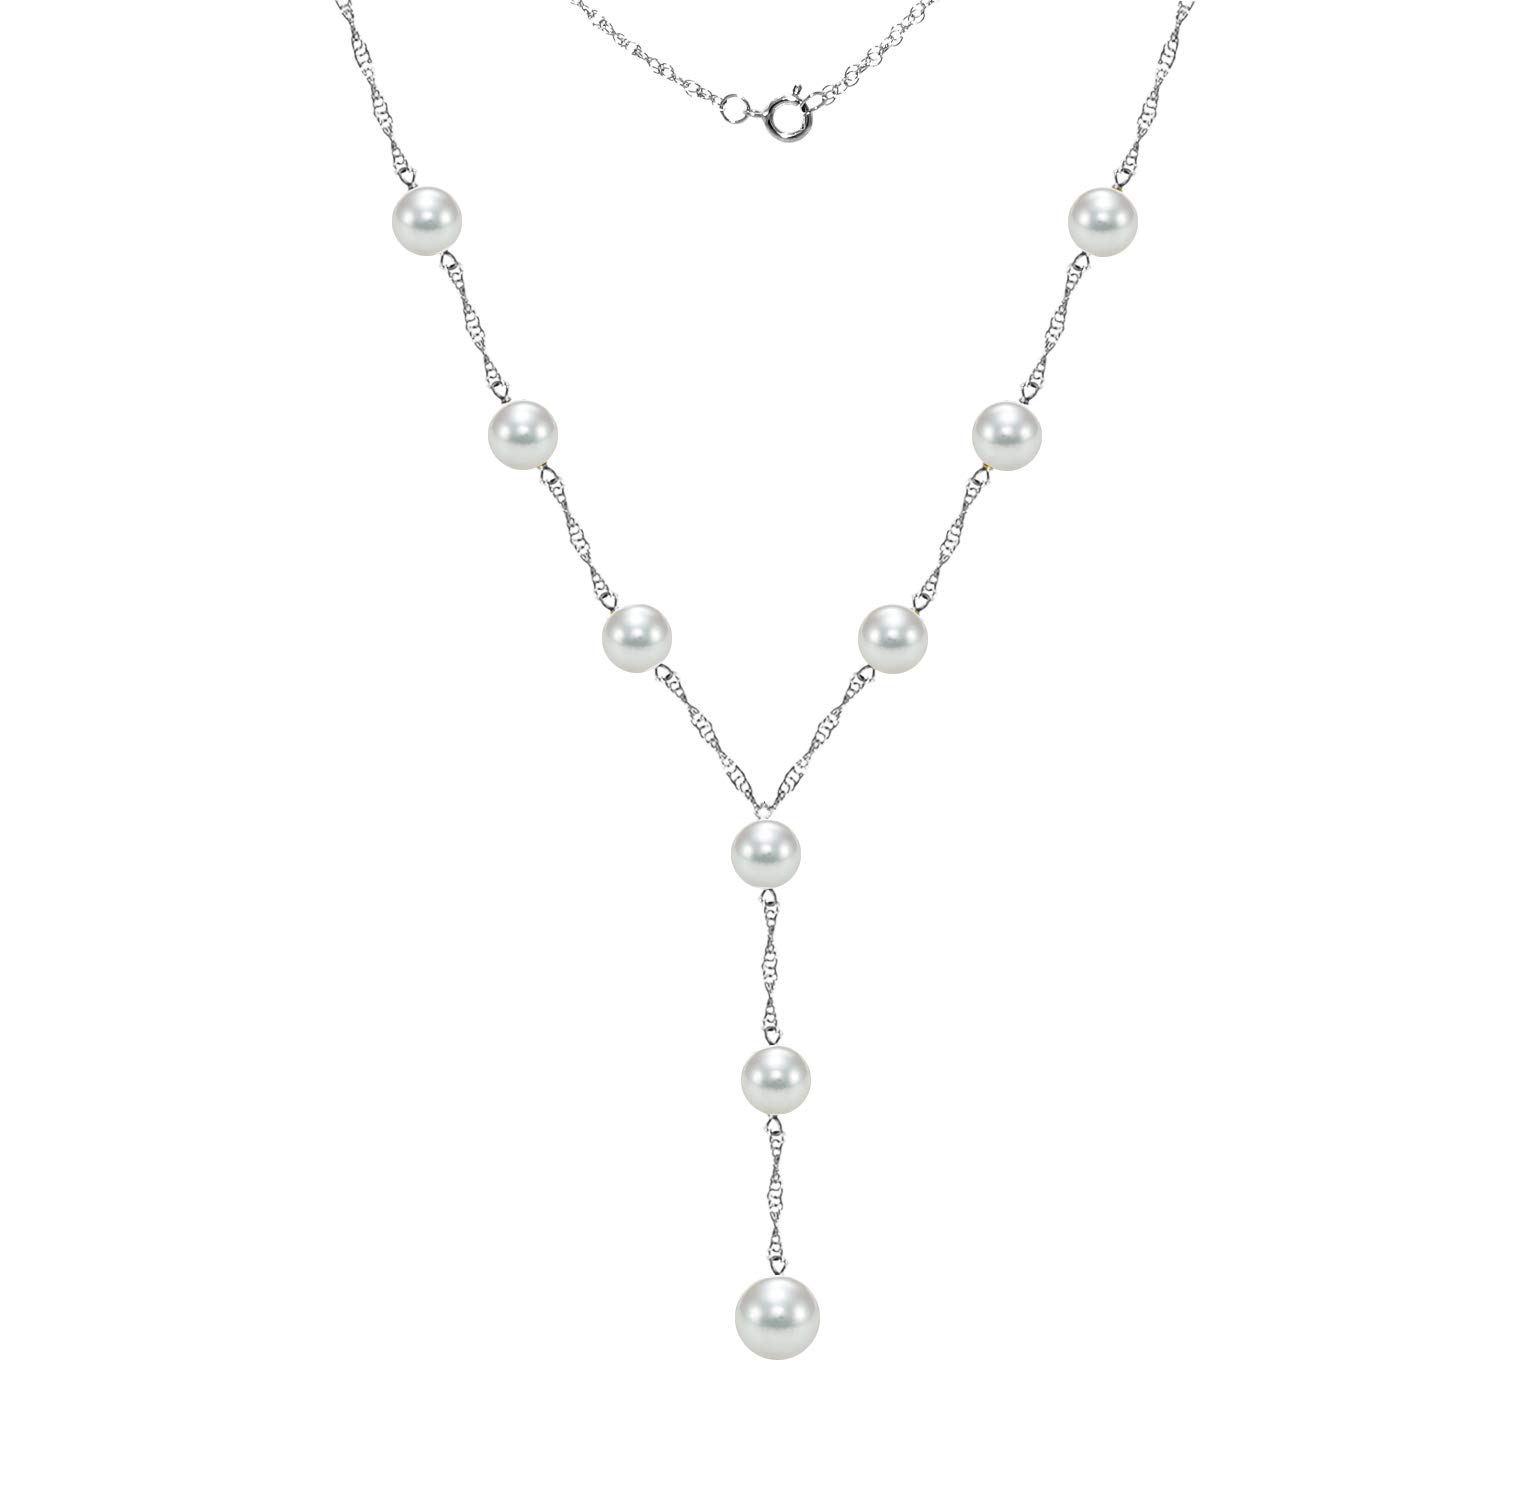 14k White Gold Lariat Tin Cup Station Necklace Saltwater White Akoya Cultured Pearl 6.5-7mm and 8-8.5mm, 18'' + 2'' Drop by La Regis Jewelry